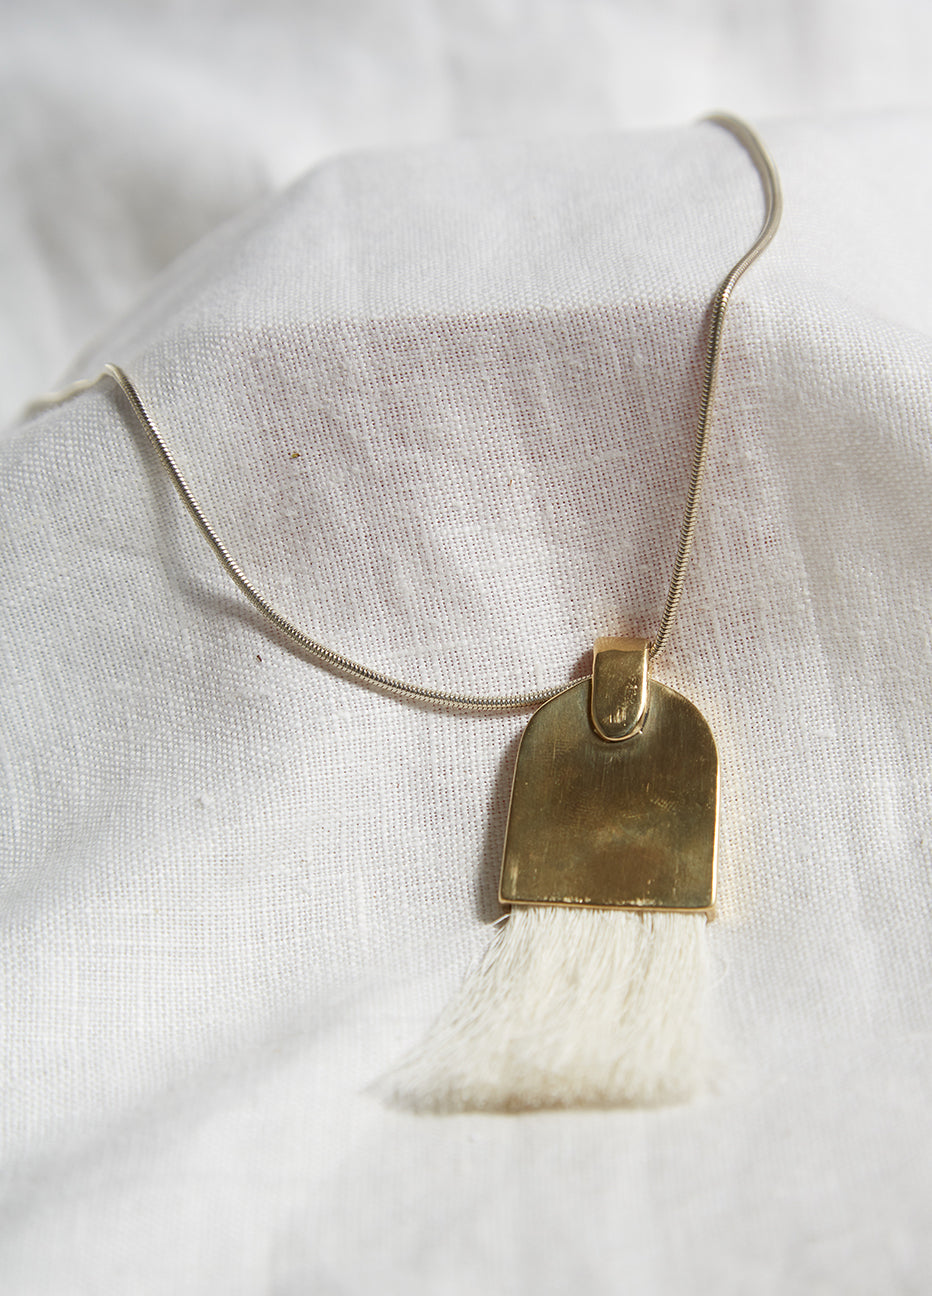 Tiro Tiro Campana Necklace